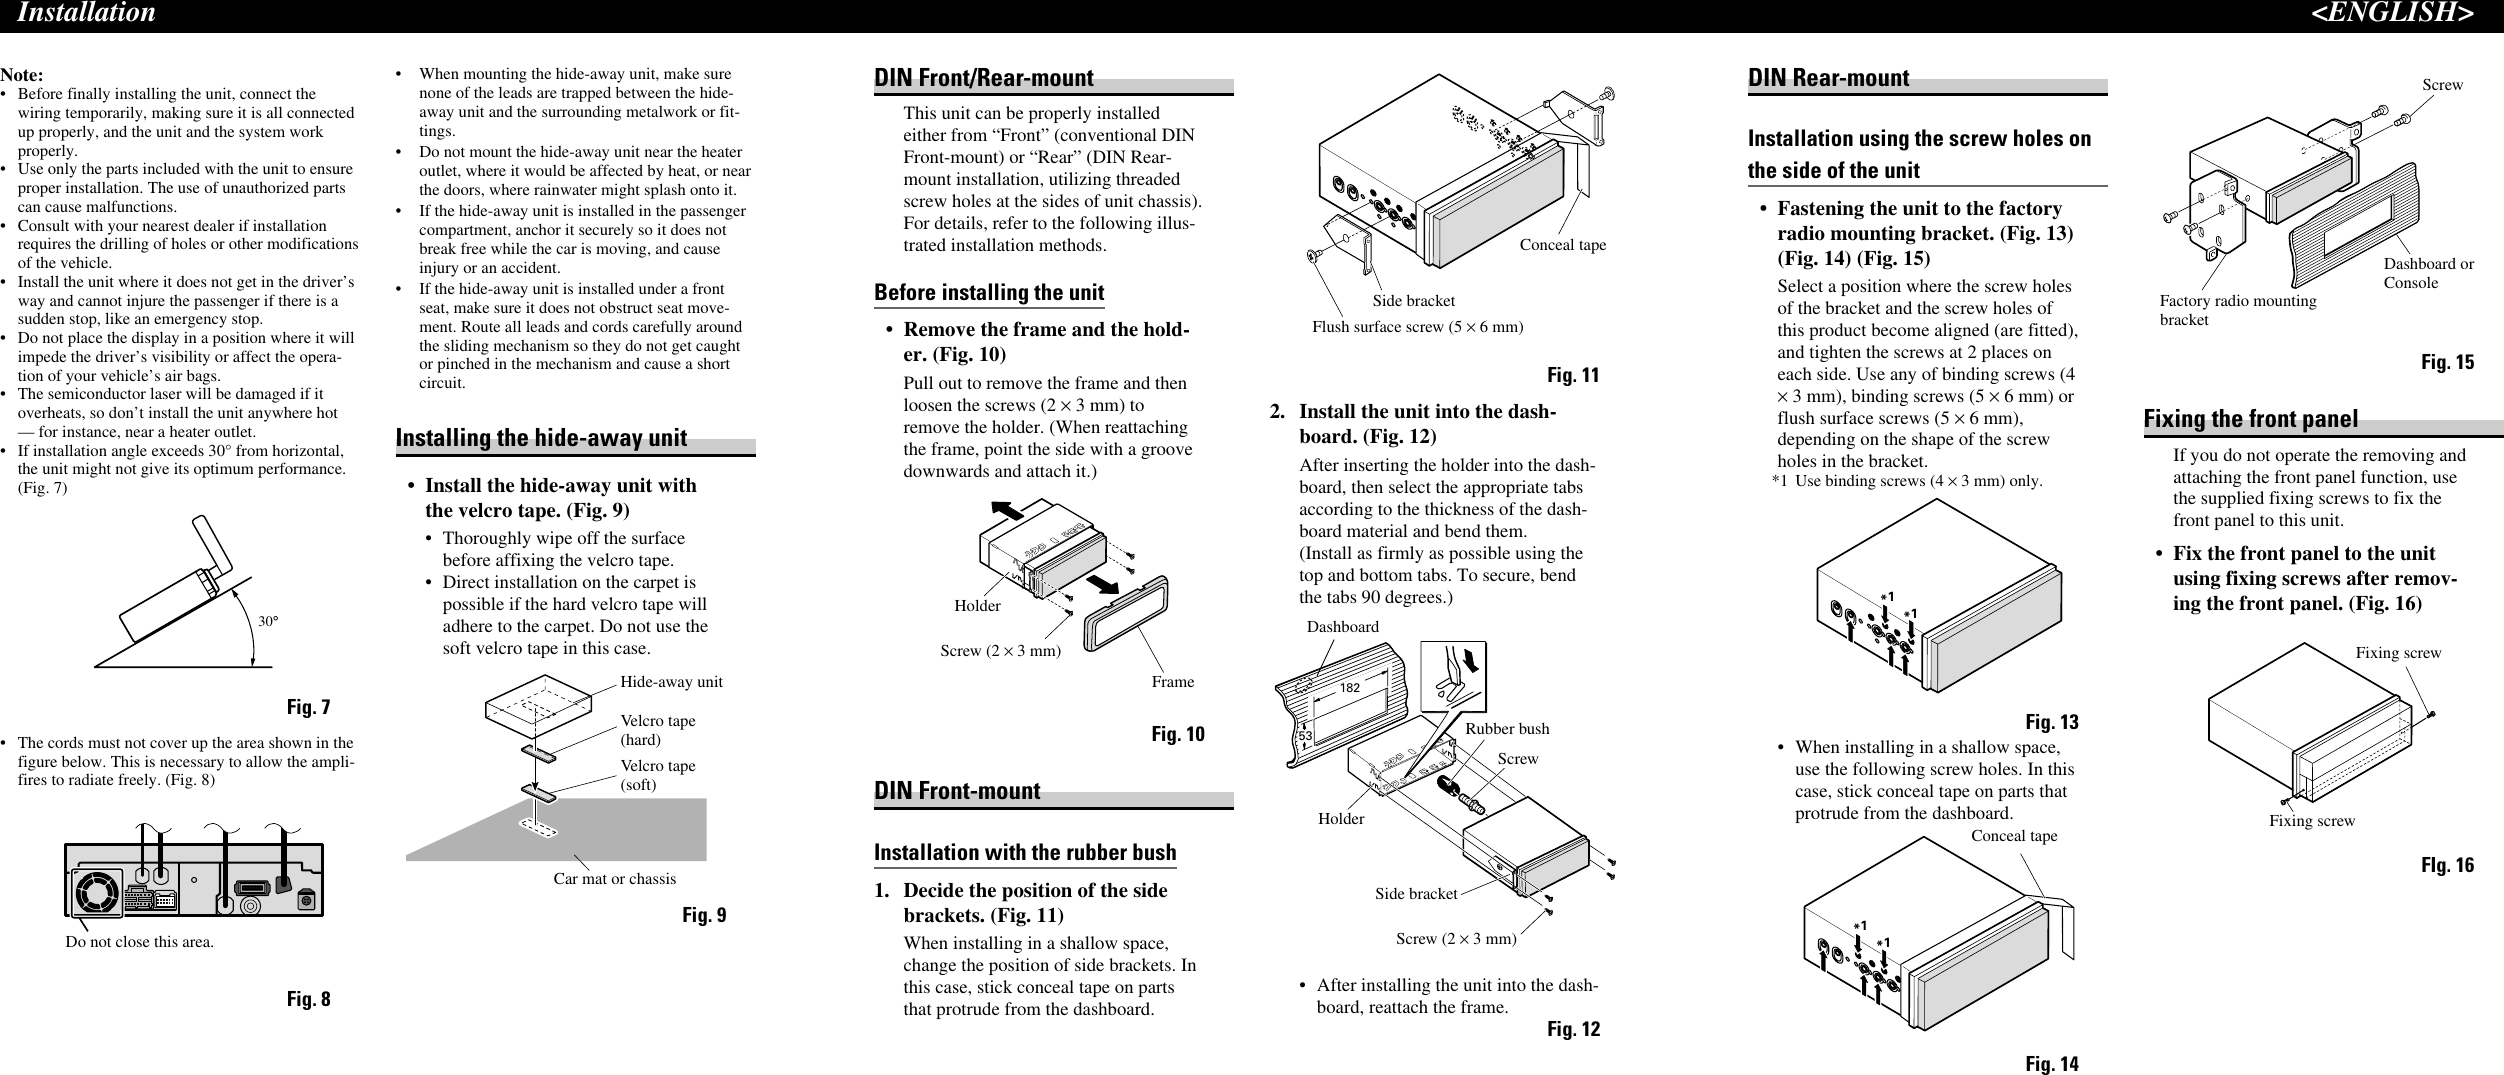 Pioneer Crd3782 A If Not Then 2038105installation Manual Avh P6500dvd Wiring Diagram Page 4 Of 8